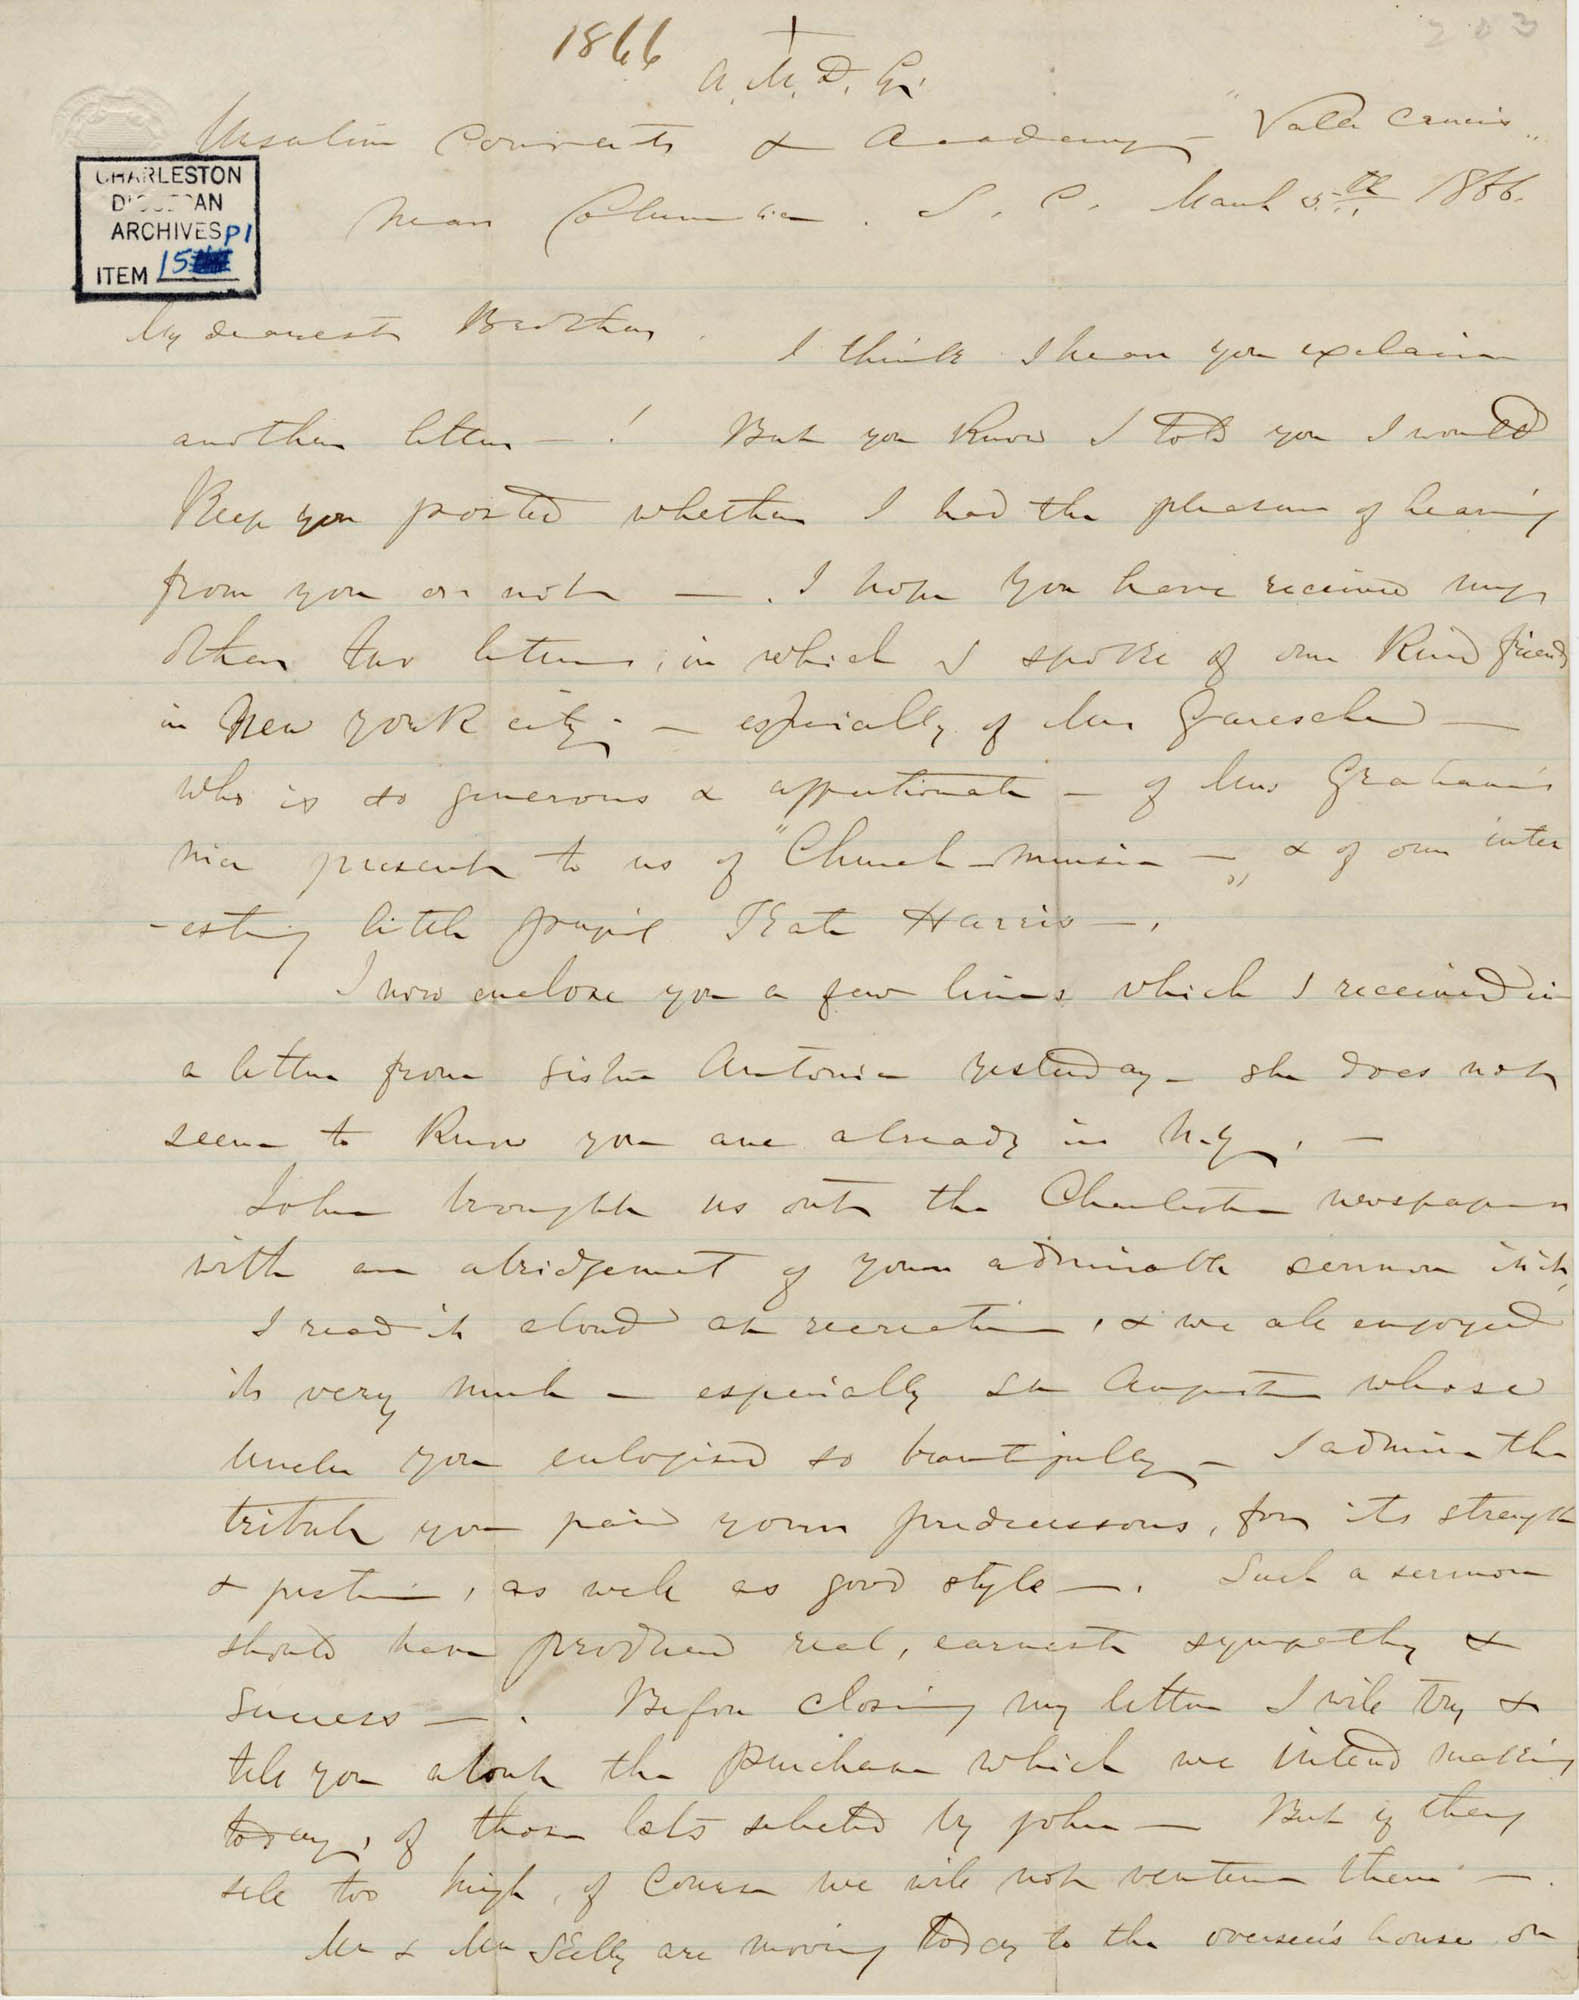 396. Madame Baptiste to Bp Patrick Lynch -- March 5, 1866